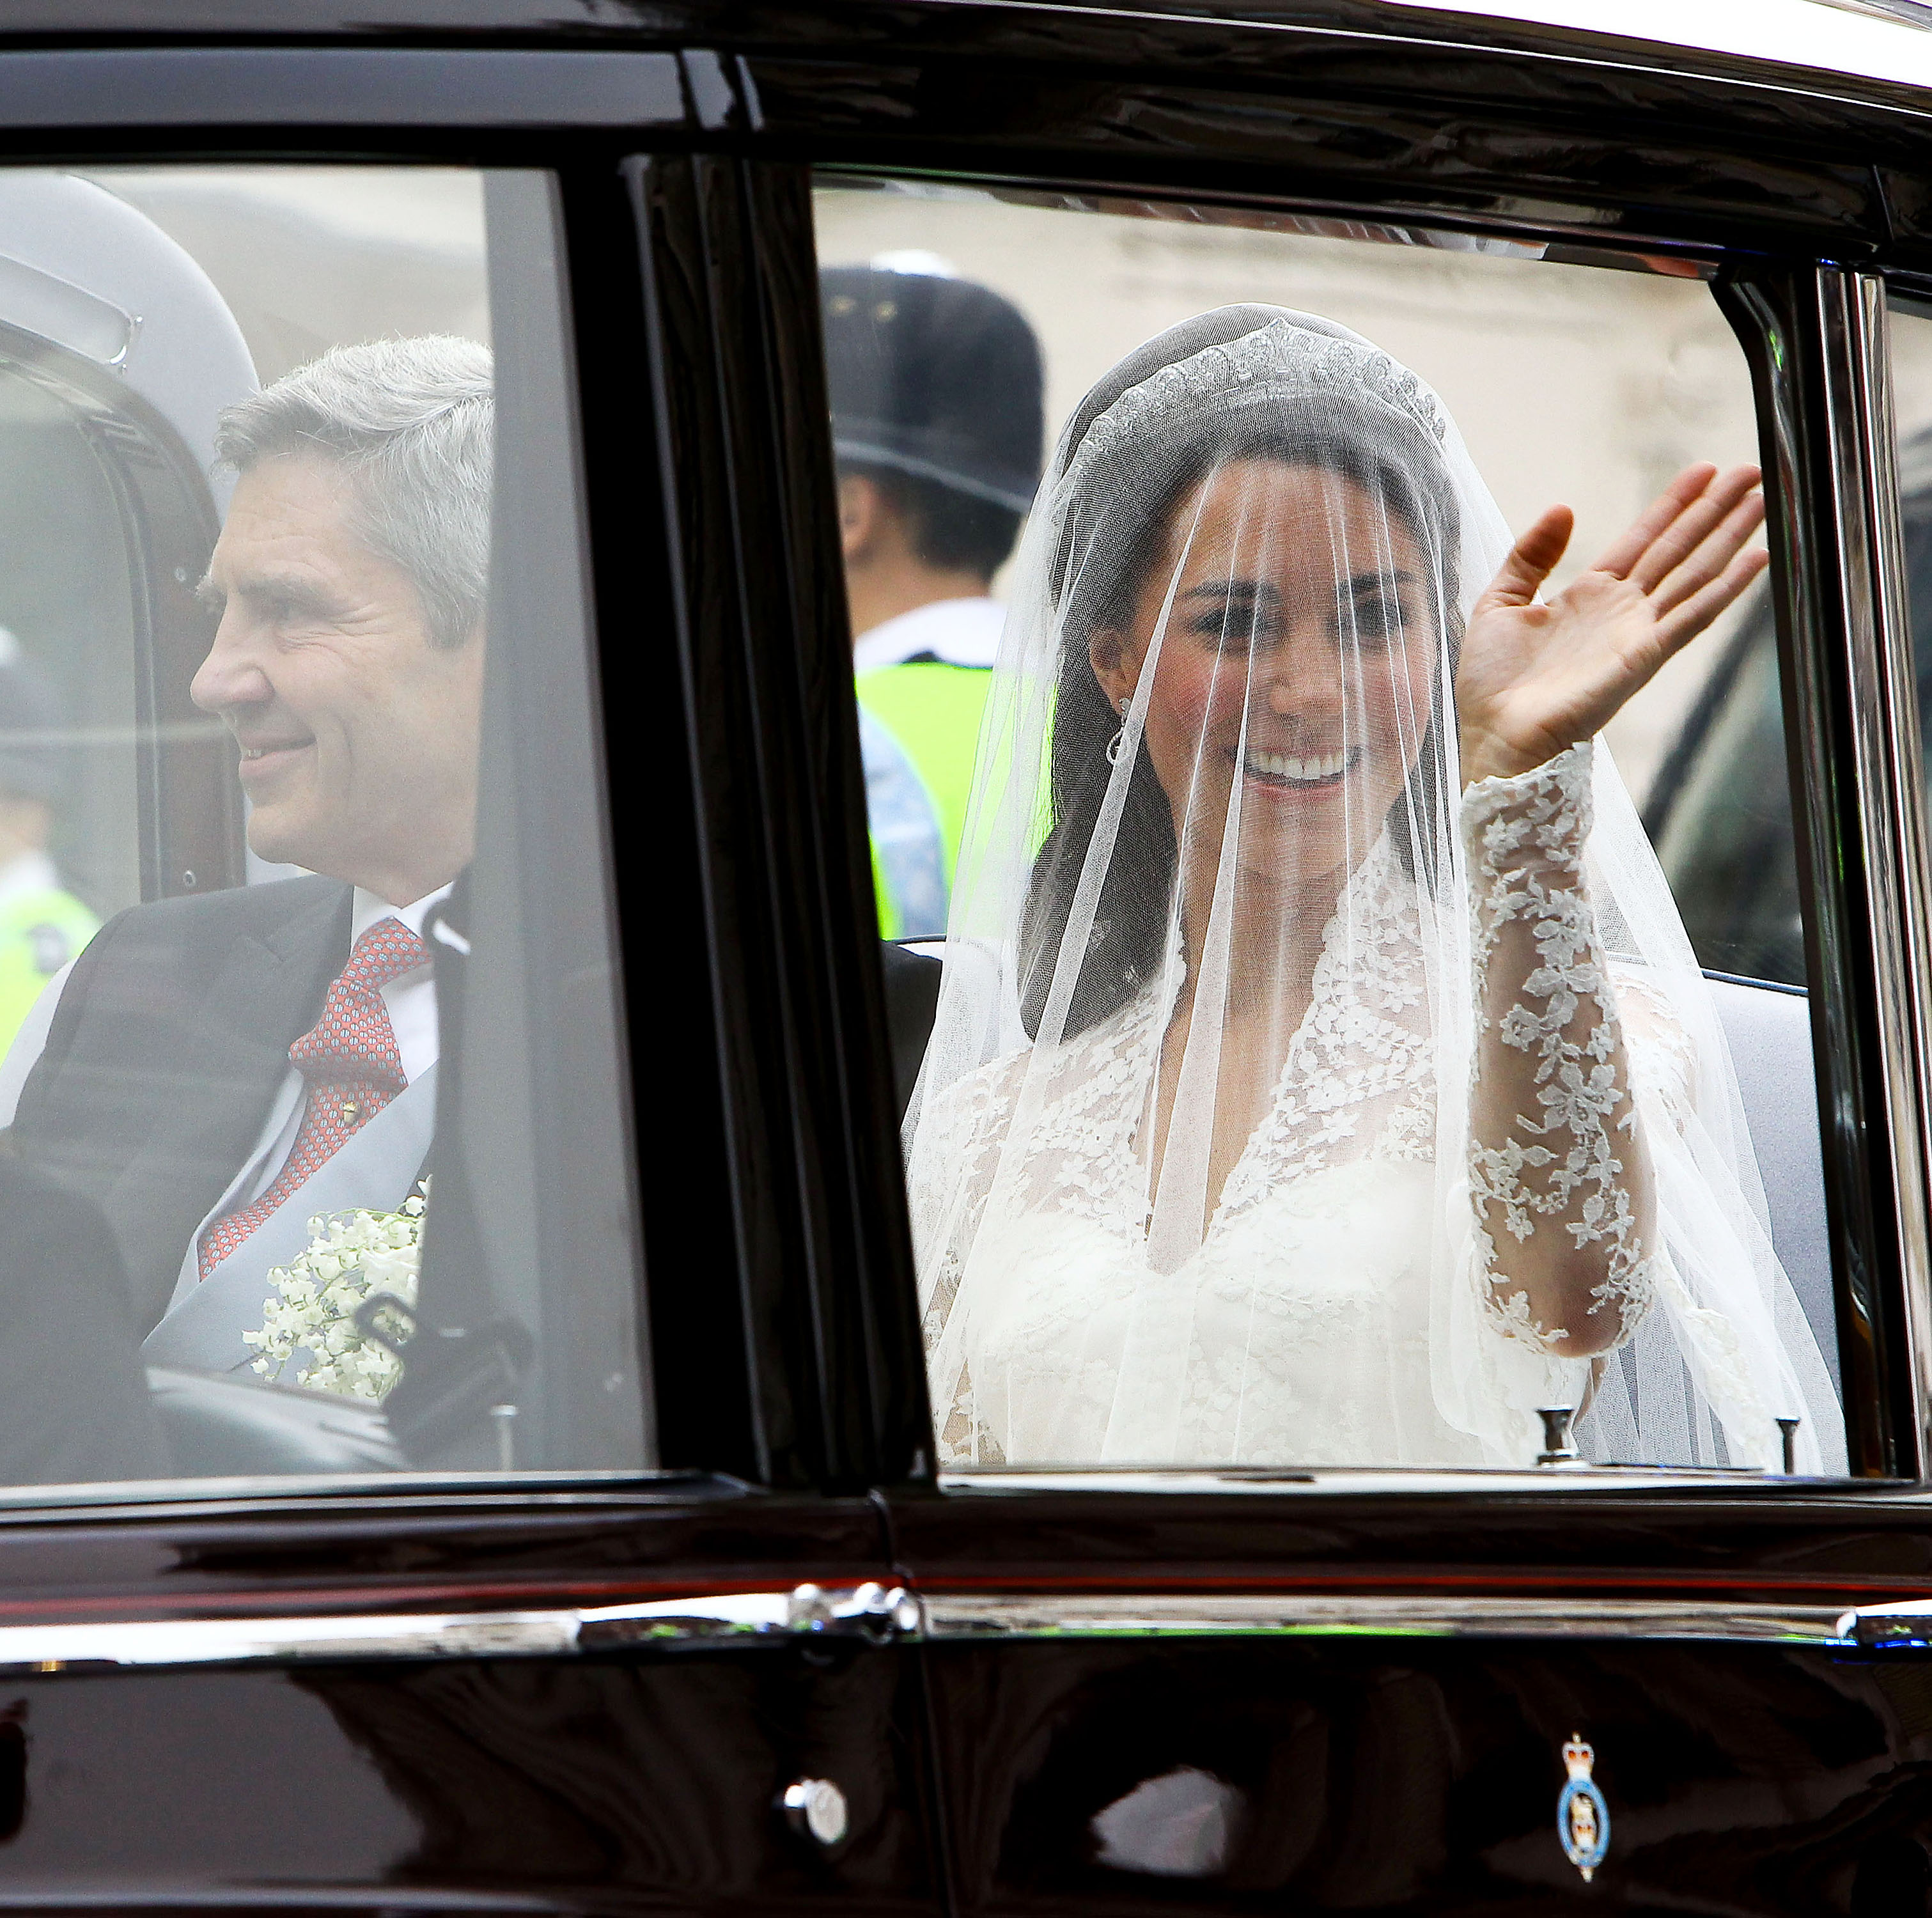 Kate Middleton in royal wedding dress